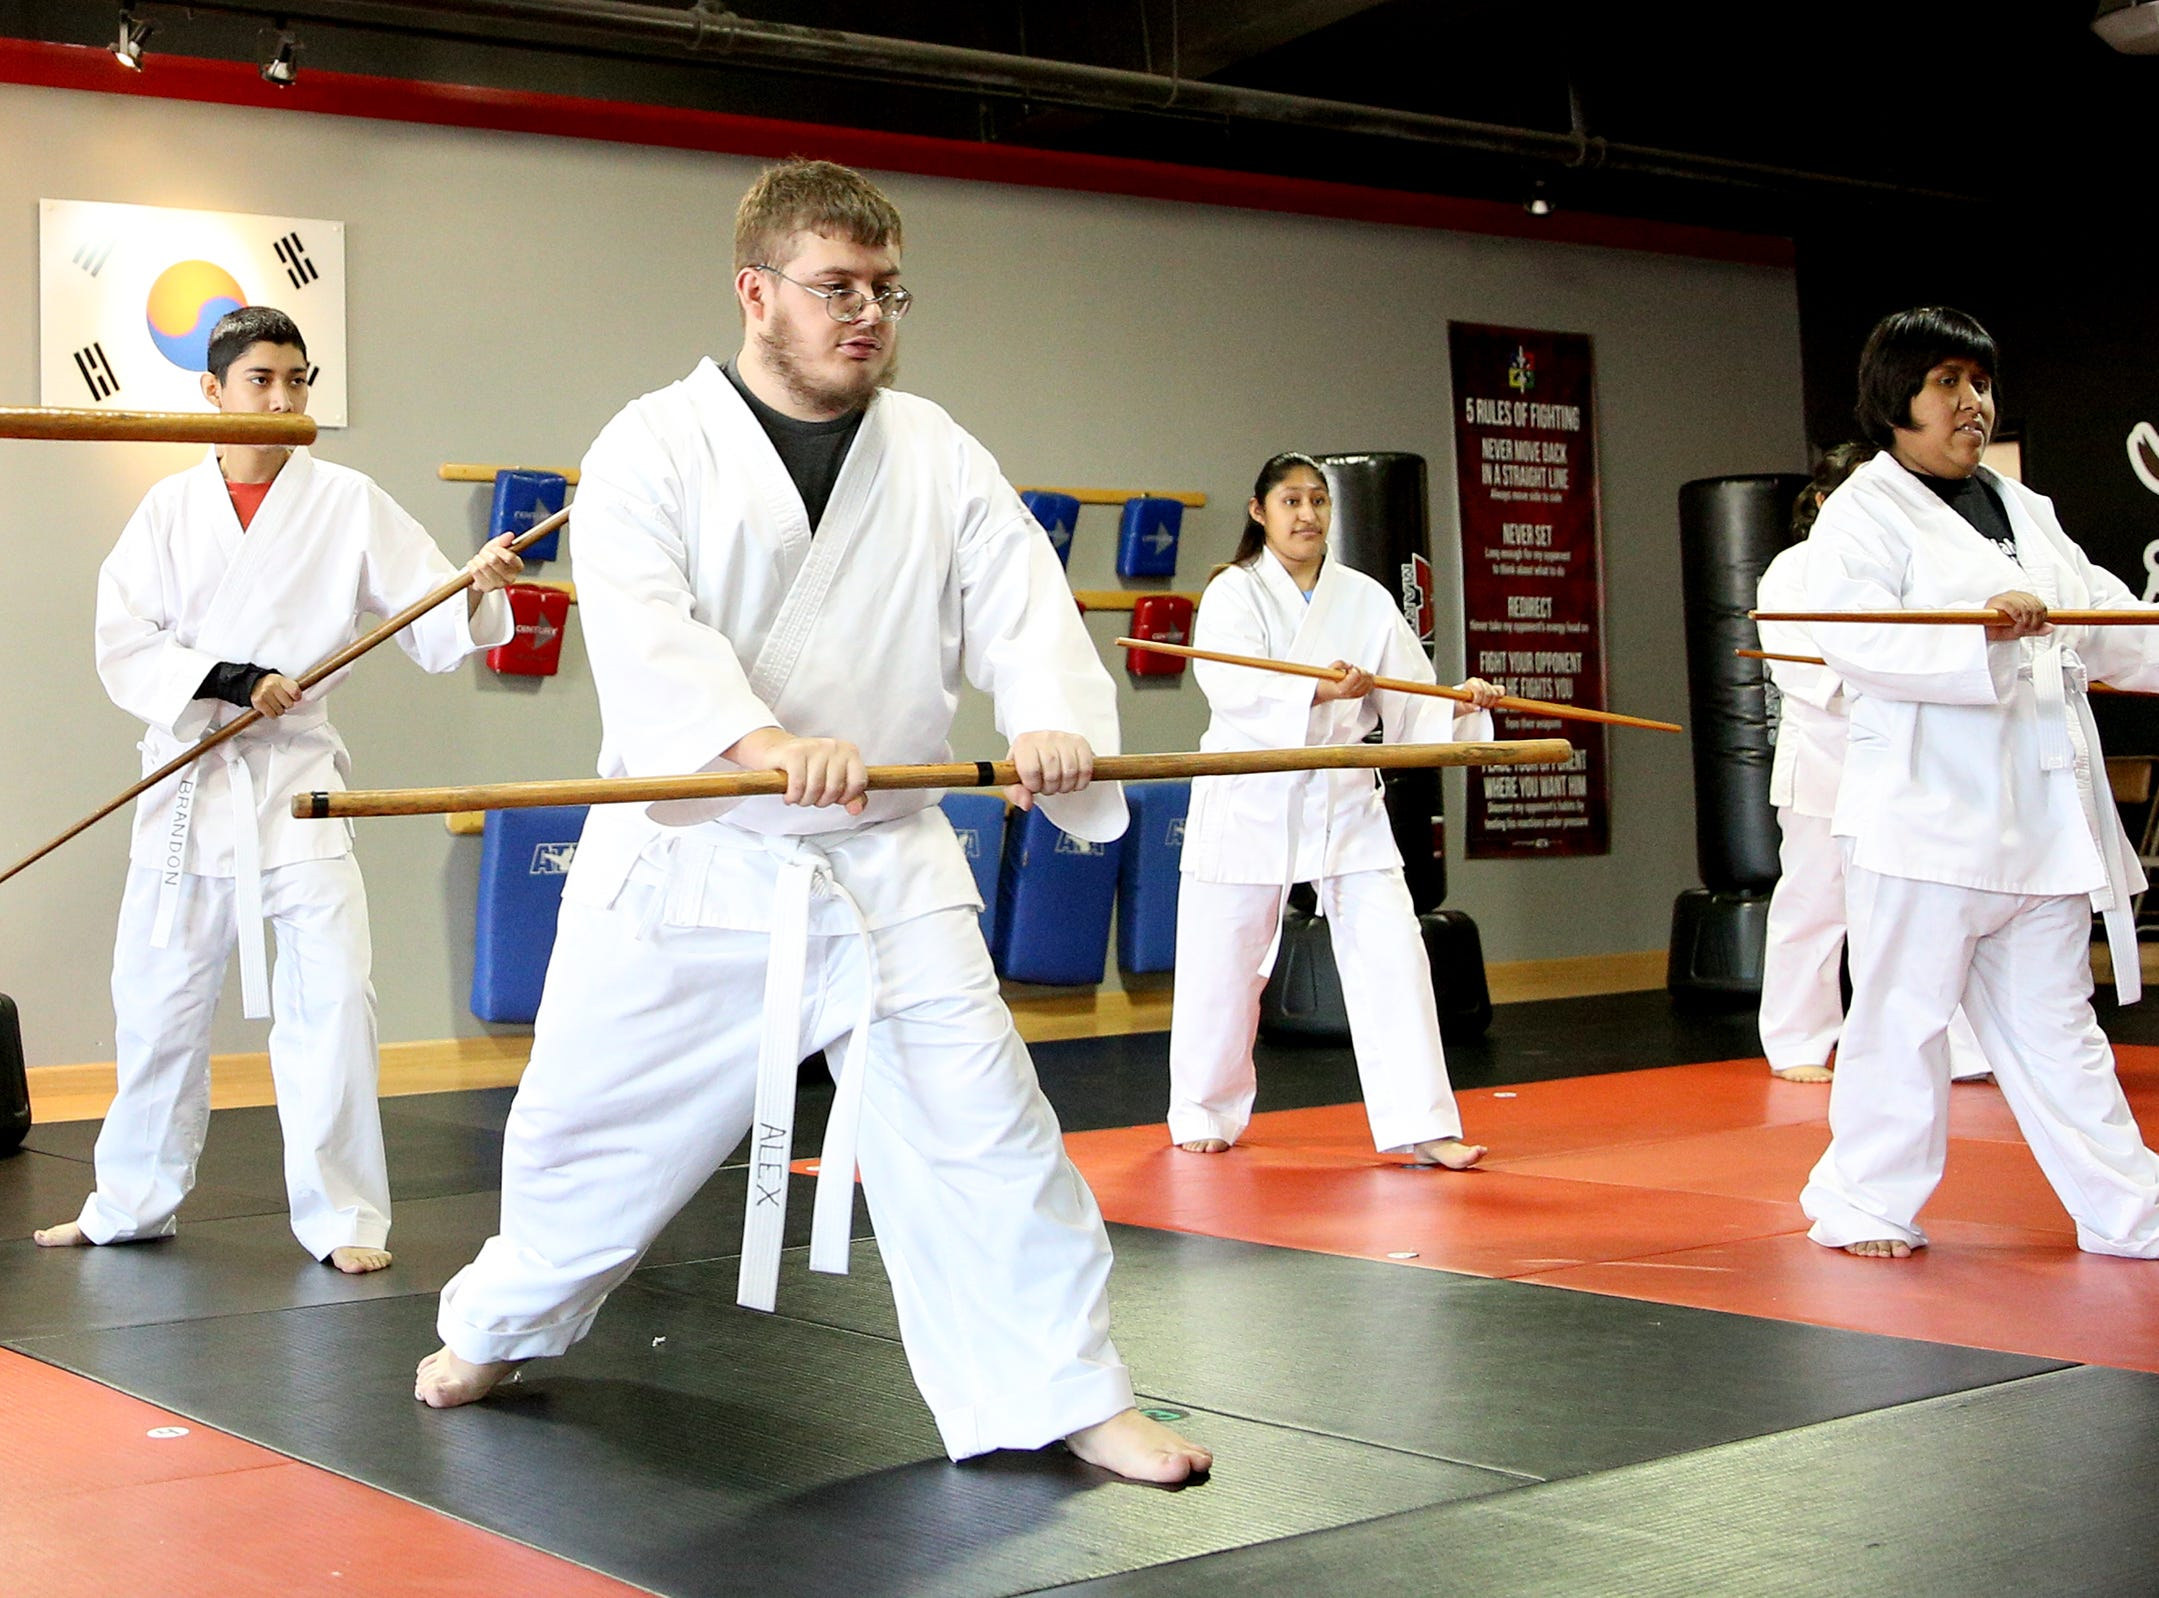 Woodburn young adults with disabilities practice using bo staffs during a class at ATA Martial Arts Keizer on Thursday, Dec. 13, 2018.